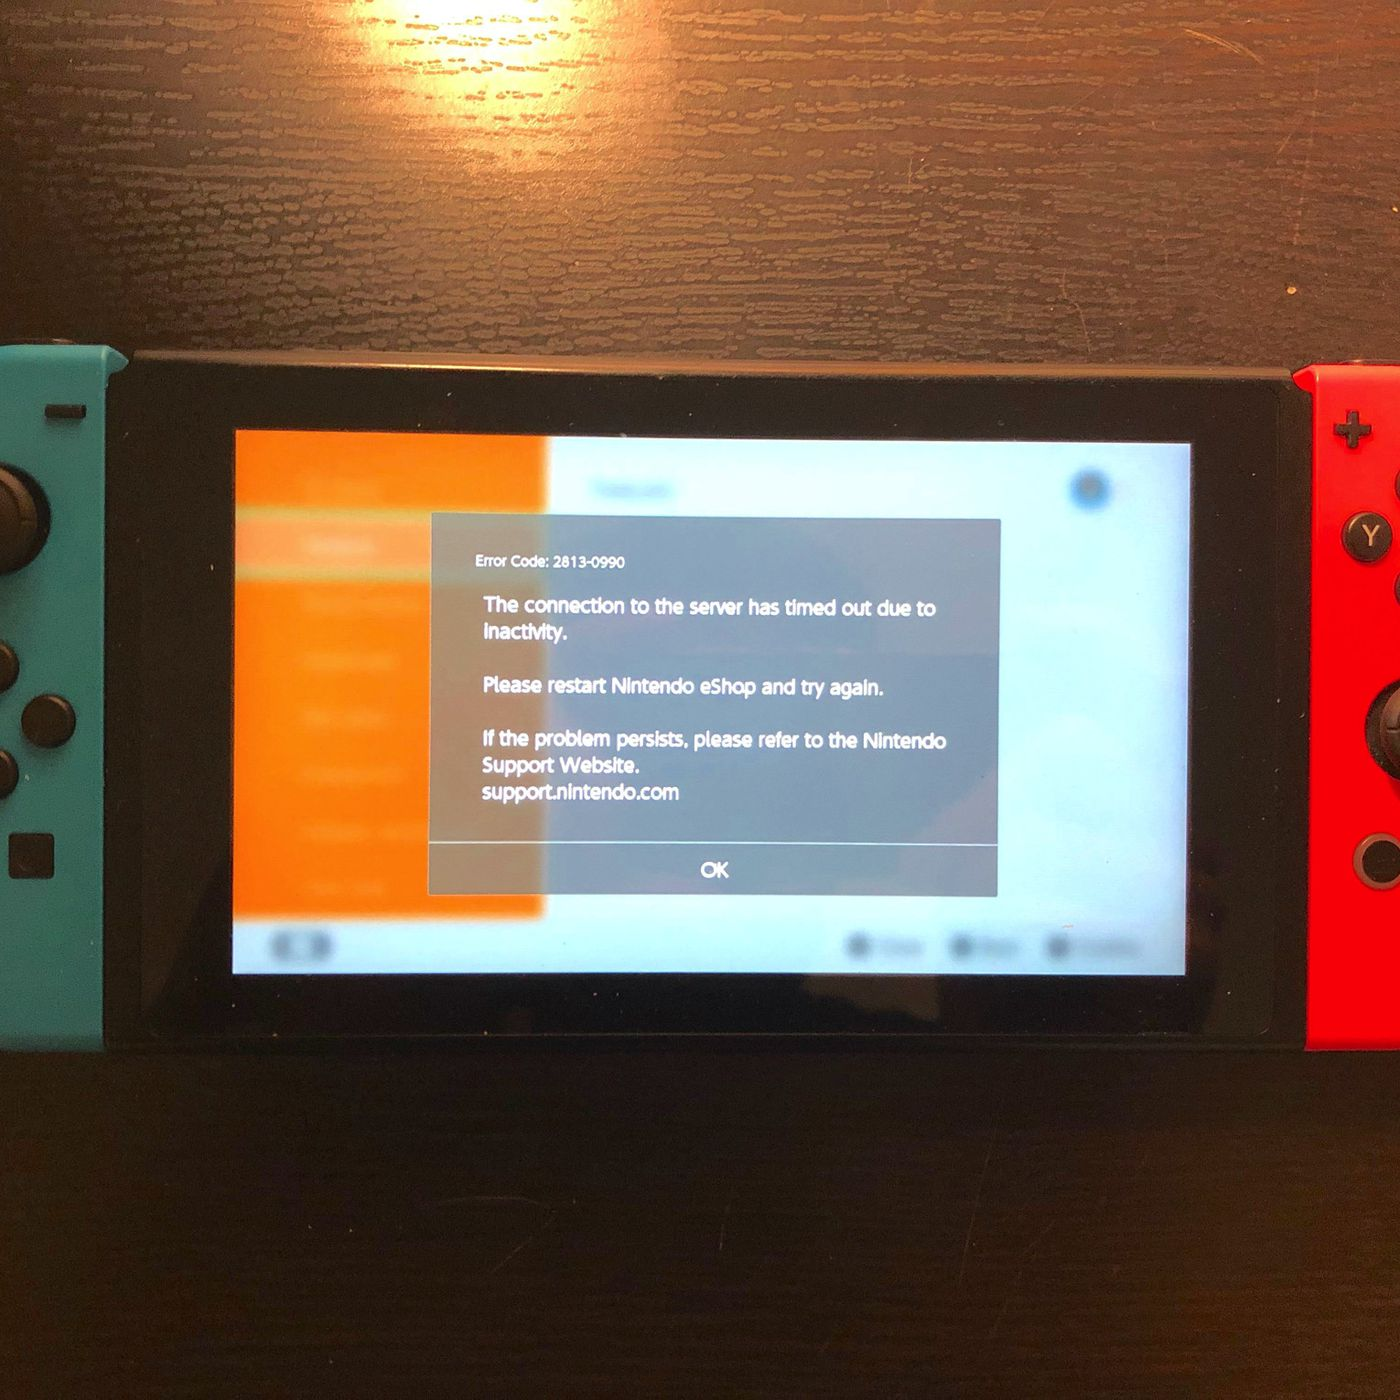 Network Failure When Attempting To Check Server Status Fortnite Nintendo S Switch Online Service Experienced A Nearly Nine Hour Outage The Verge